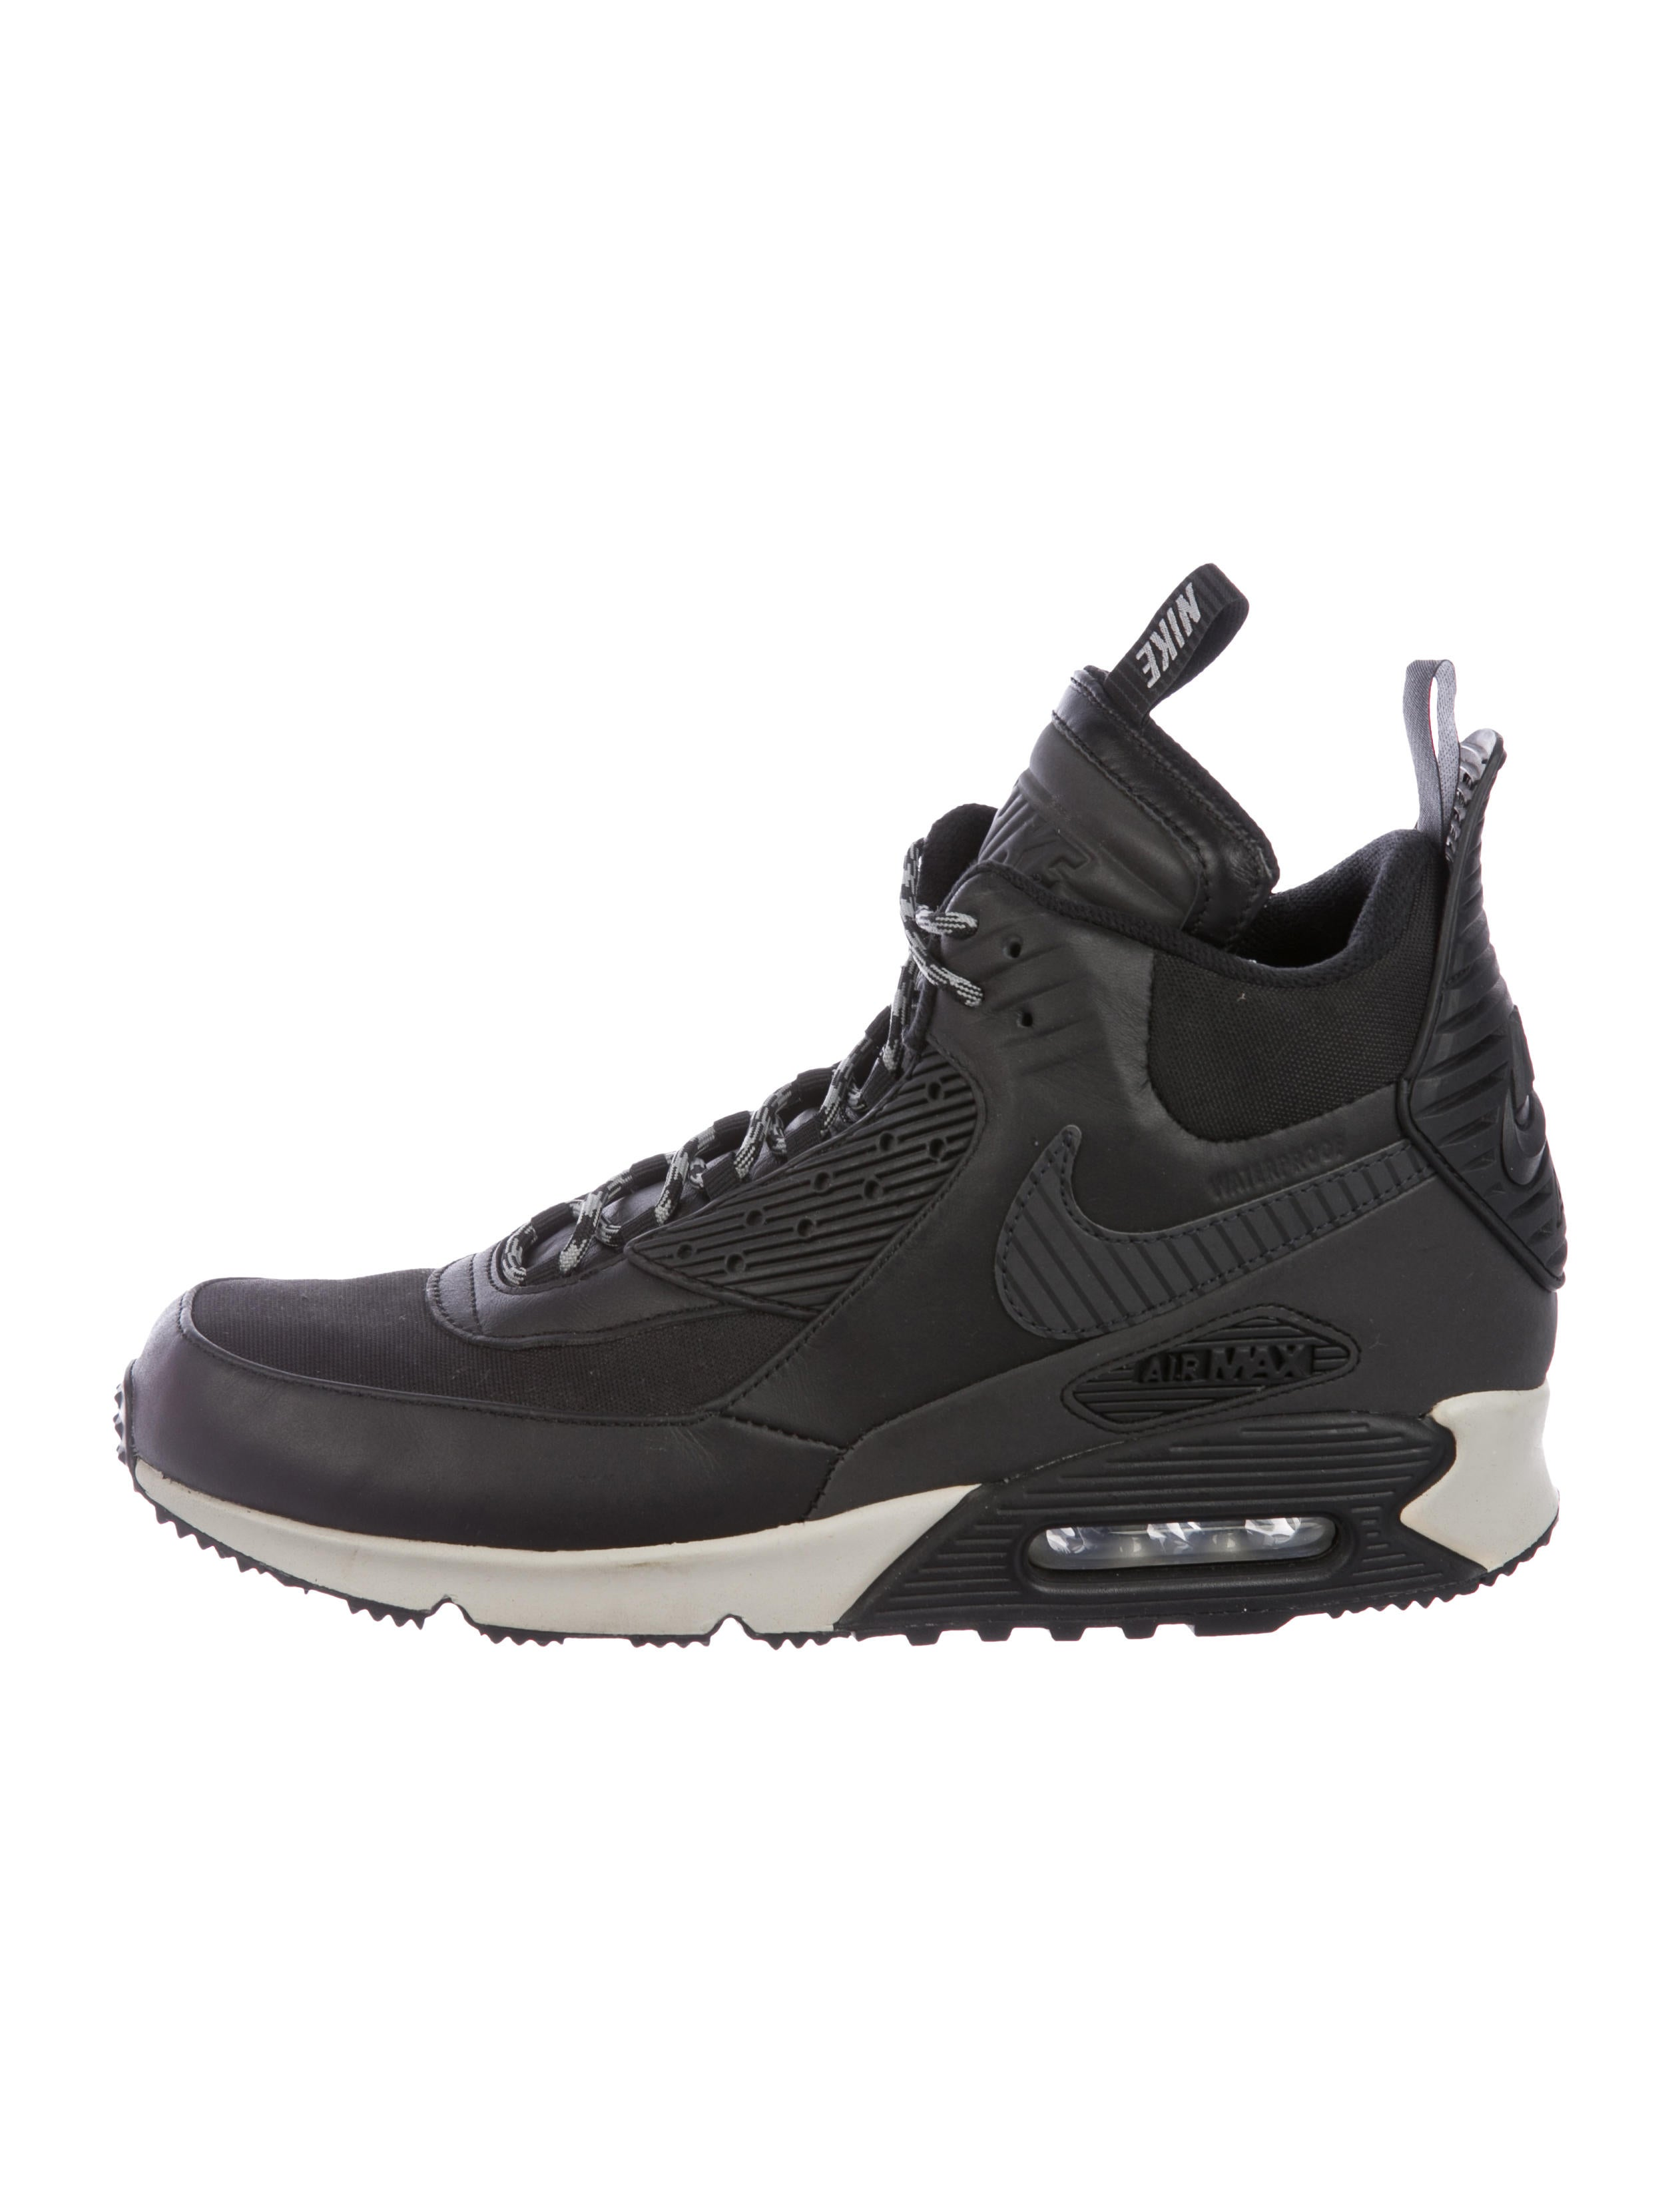 buy popular 82665 edbfe Nike Air Max 90 High-Top Sneakerboots - Shoes - WU230474   The RealReal